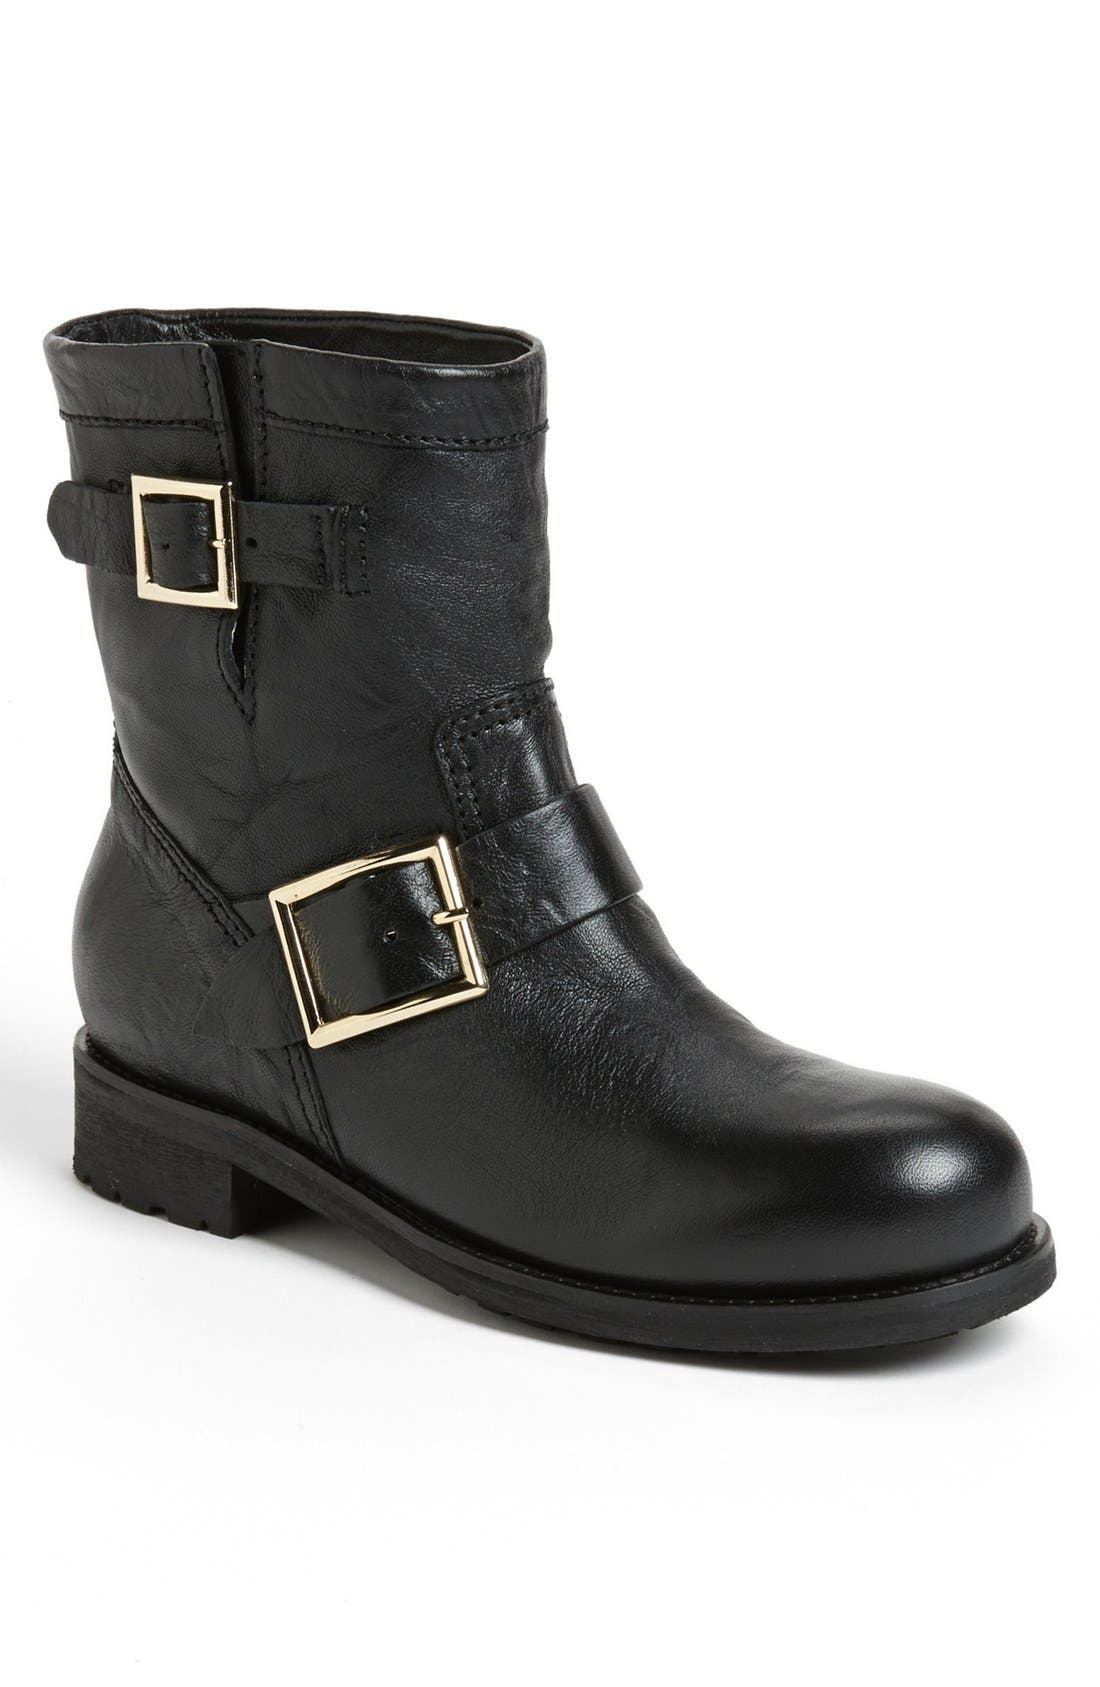 Alternate Image 1 Selected - Jimmy Choo 'Youth' Short Biker Boot (Women)